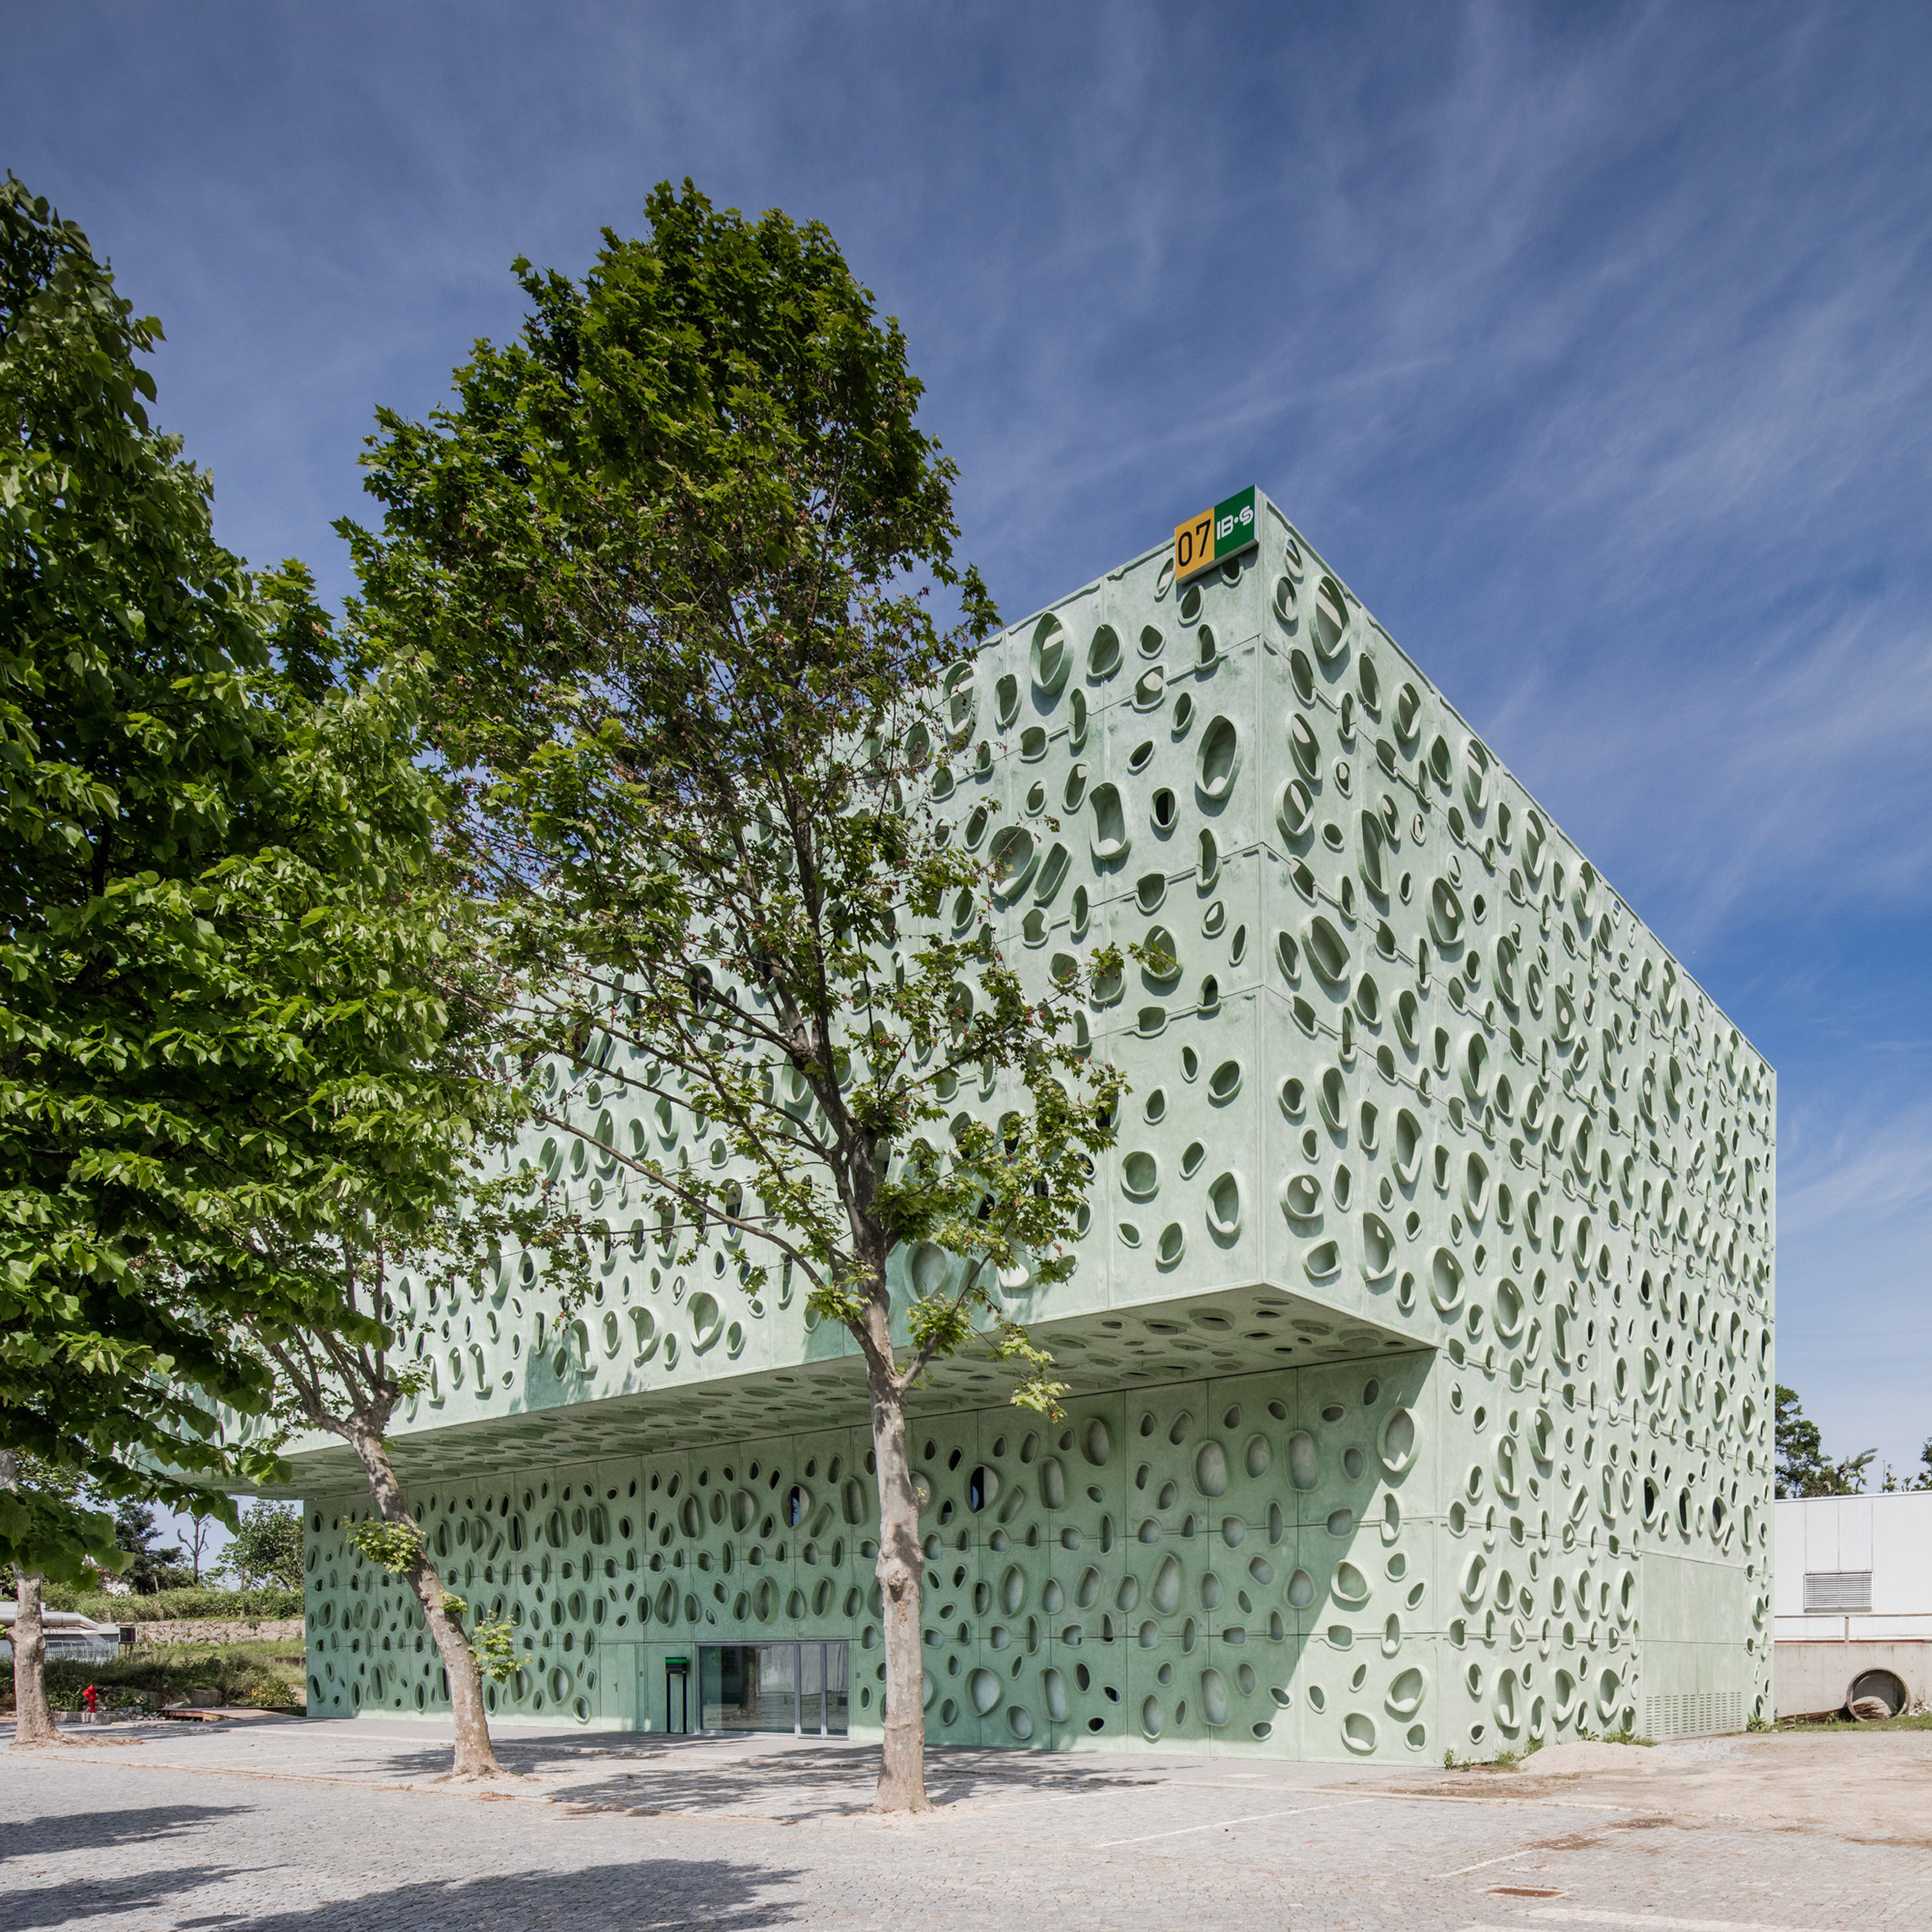 Perforated green cladding wraps university science institute by Cláudio Vilarinho